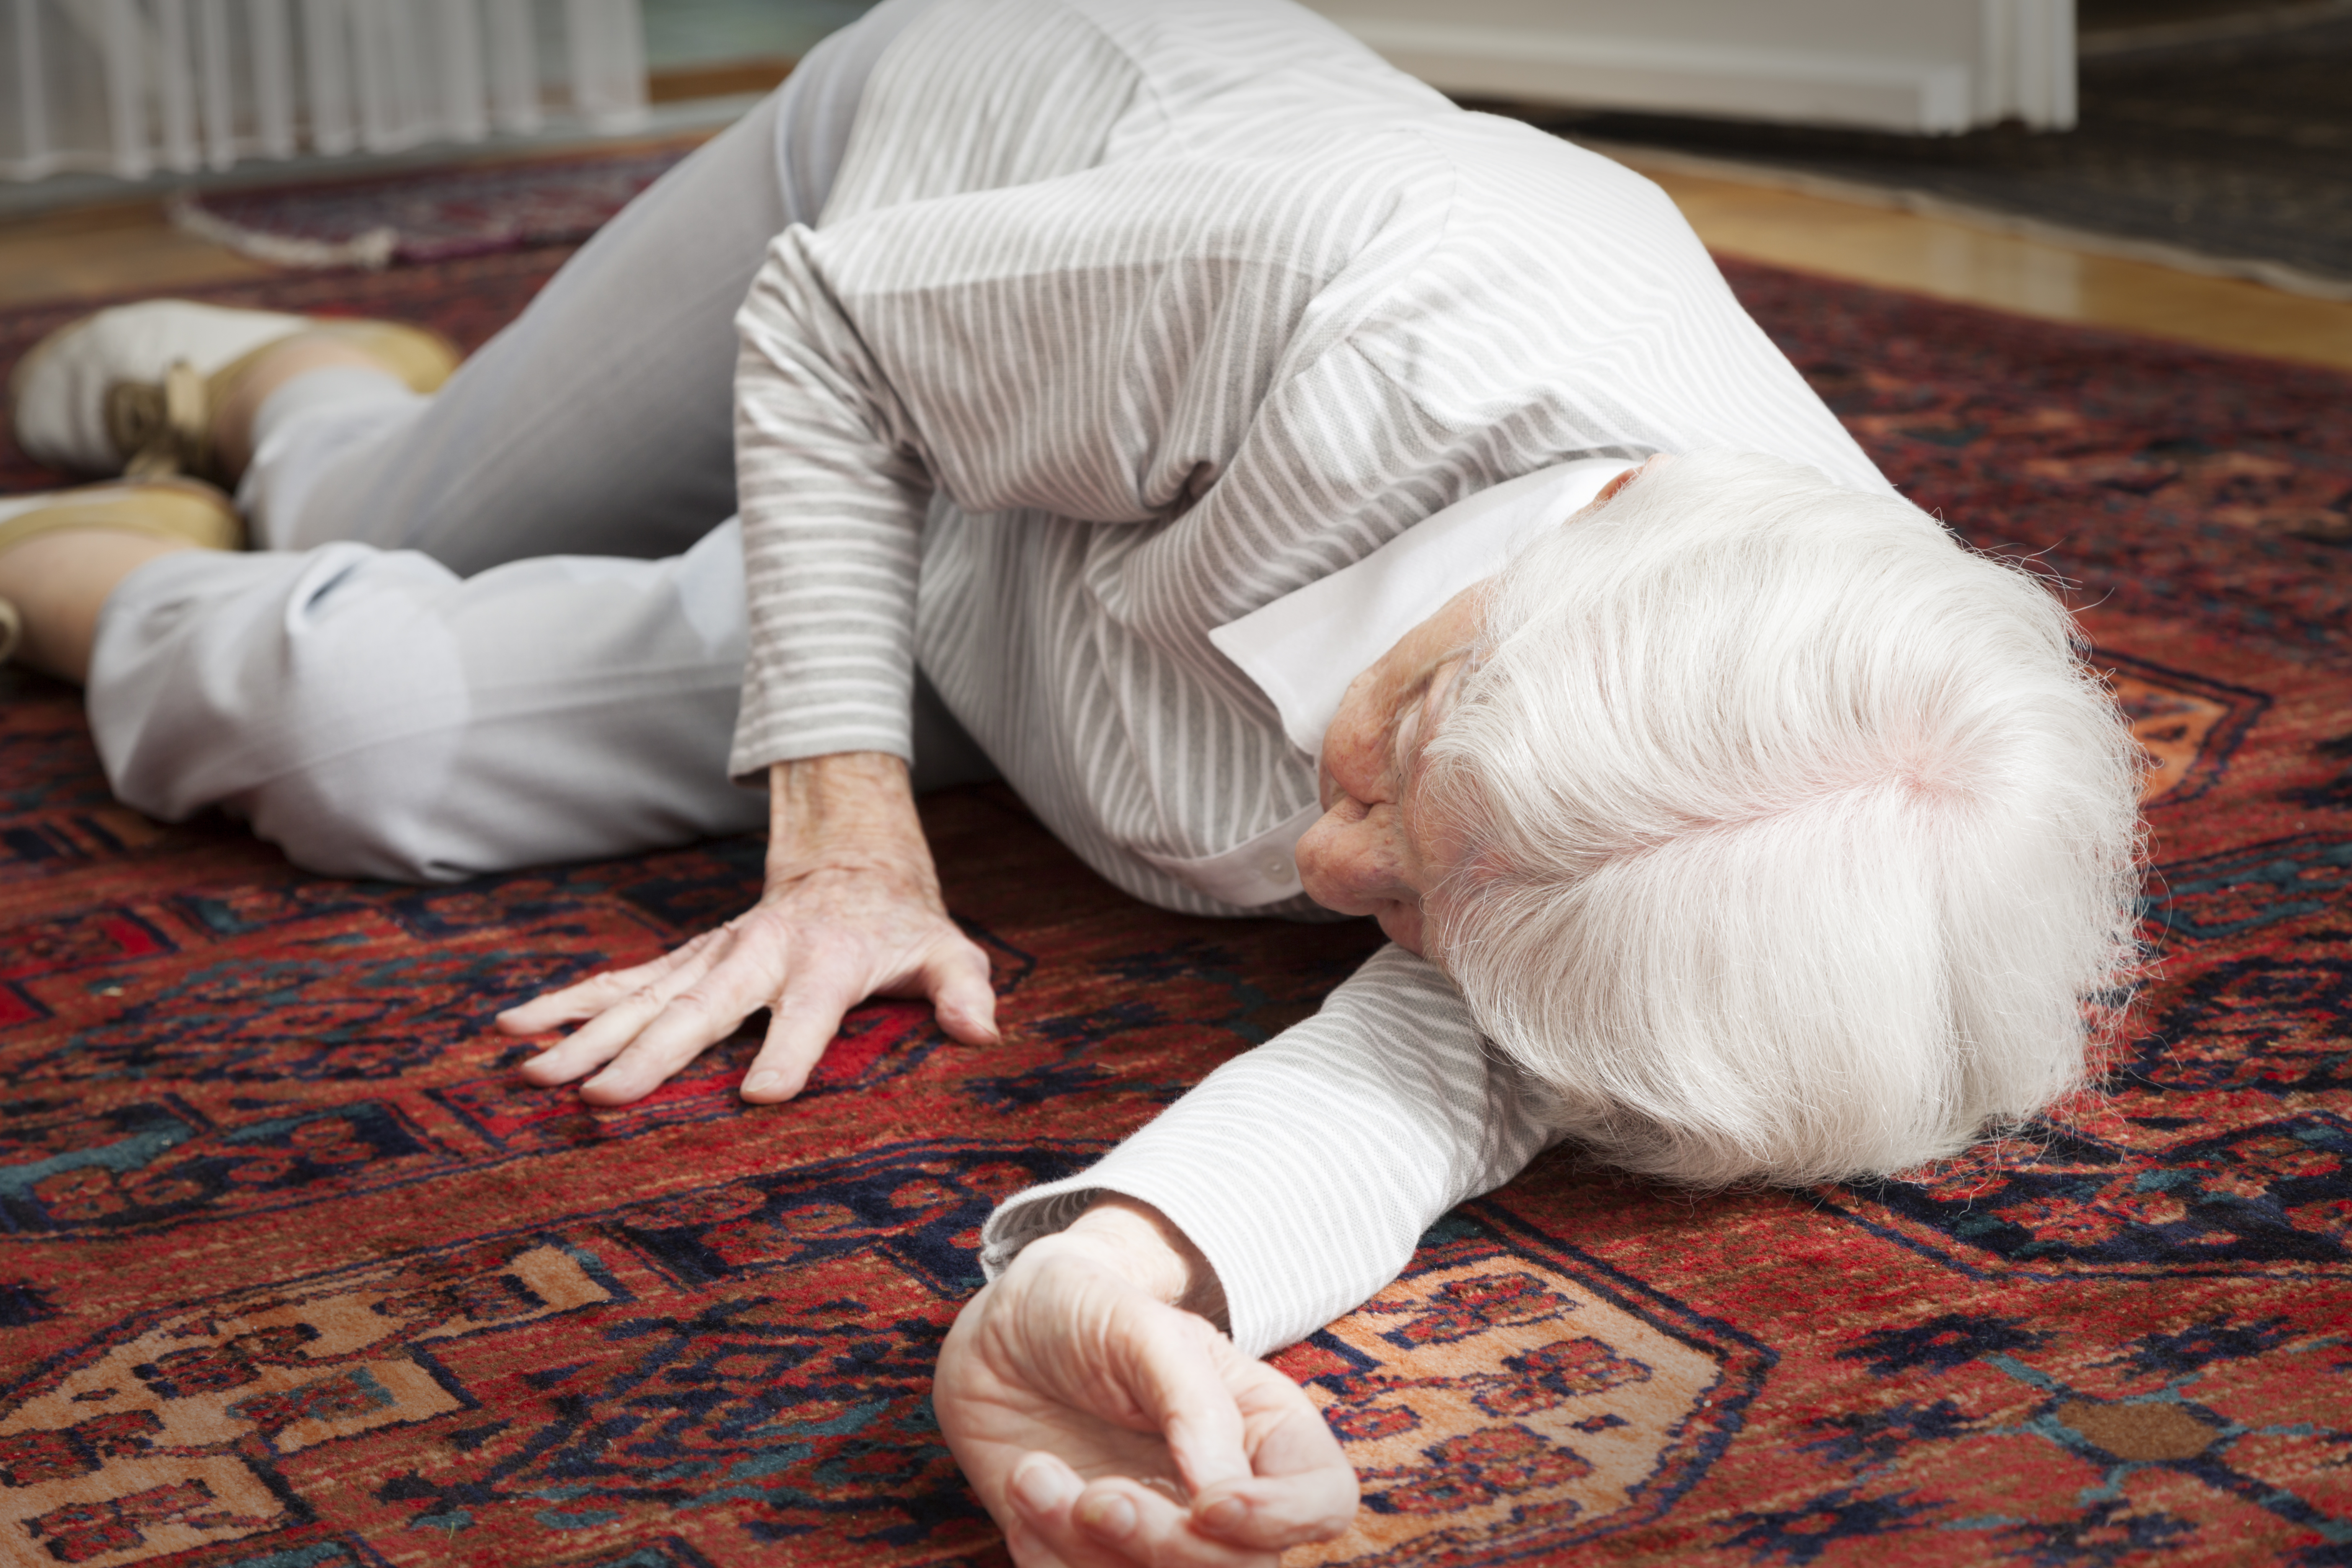 An elderly woman lying on the floor after a fall. (Getty Images)